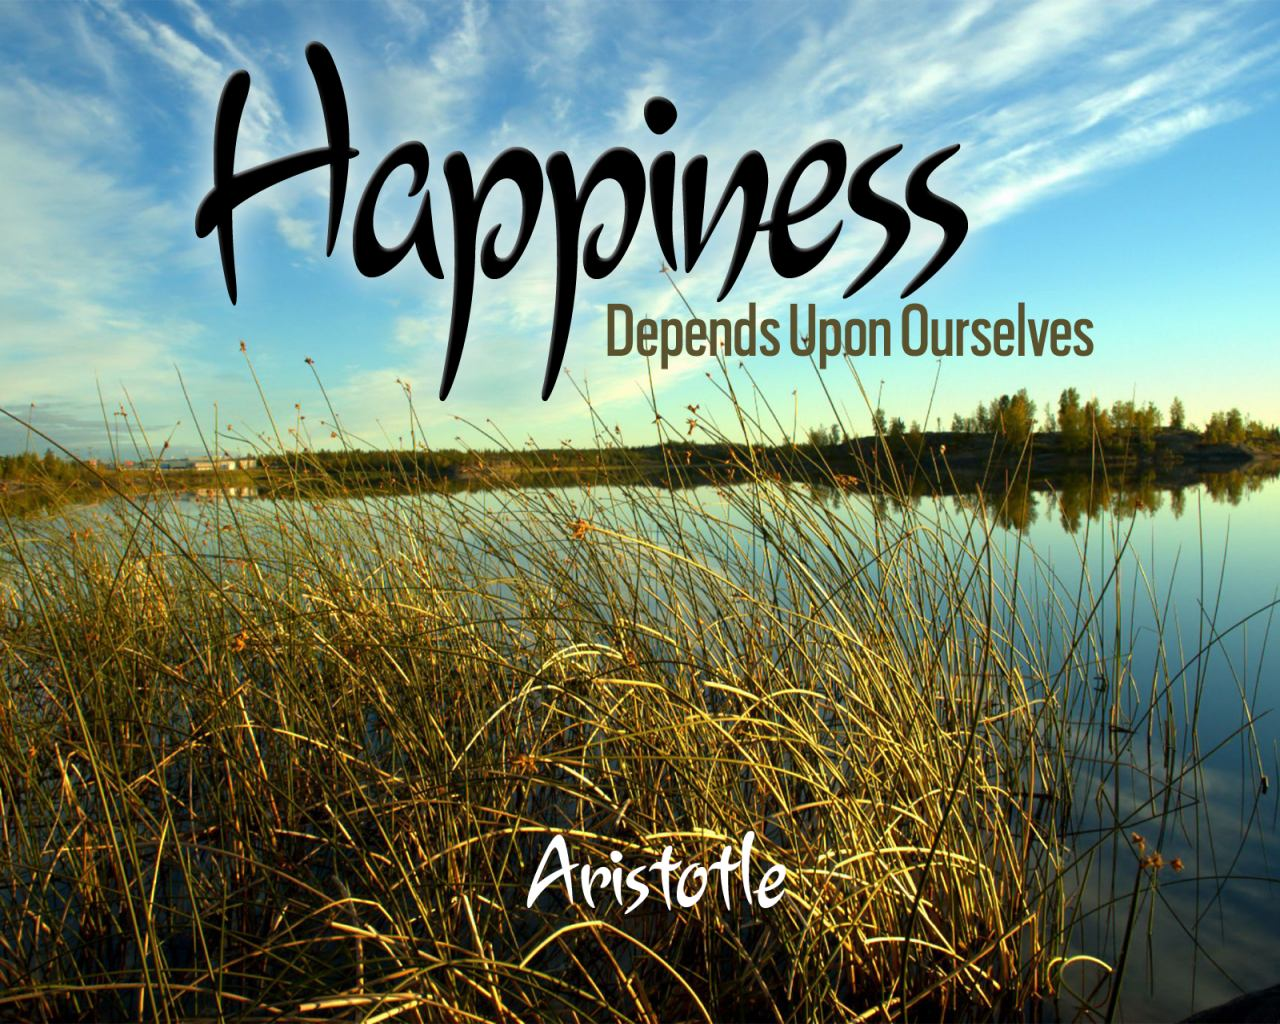 happiness according to aristotle Cami phameconomics - 69 december 2012compare and contrast the aristotelian and the utilitarian views of the individual's happiness happiness is a topic that is and has bee.